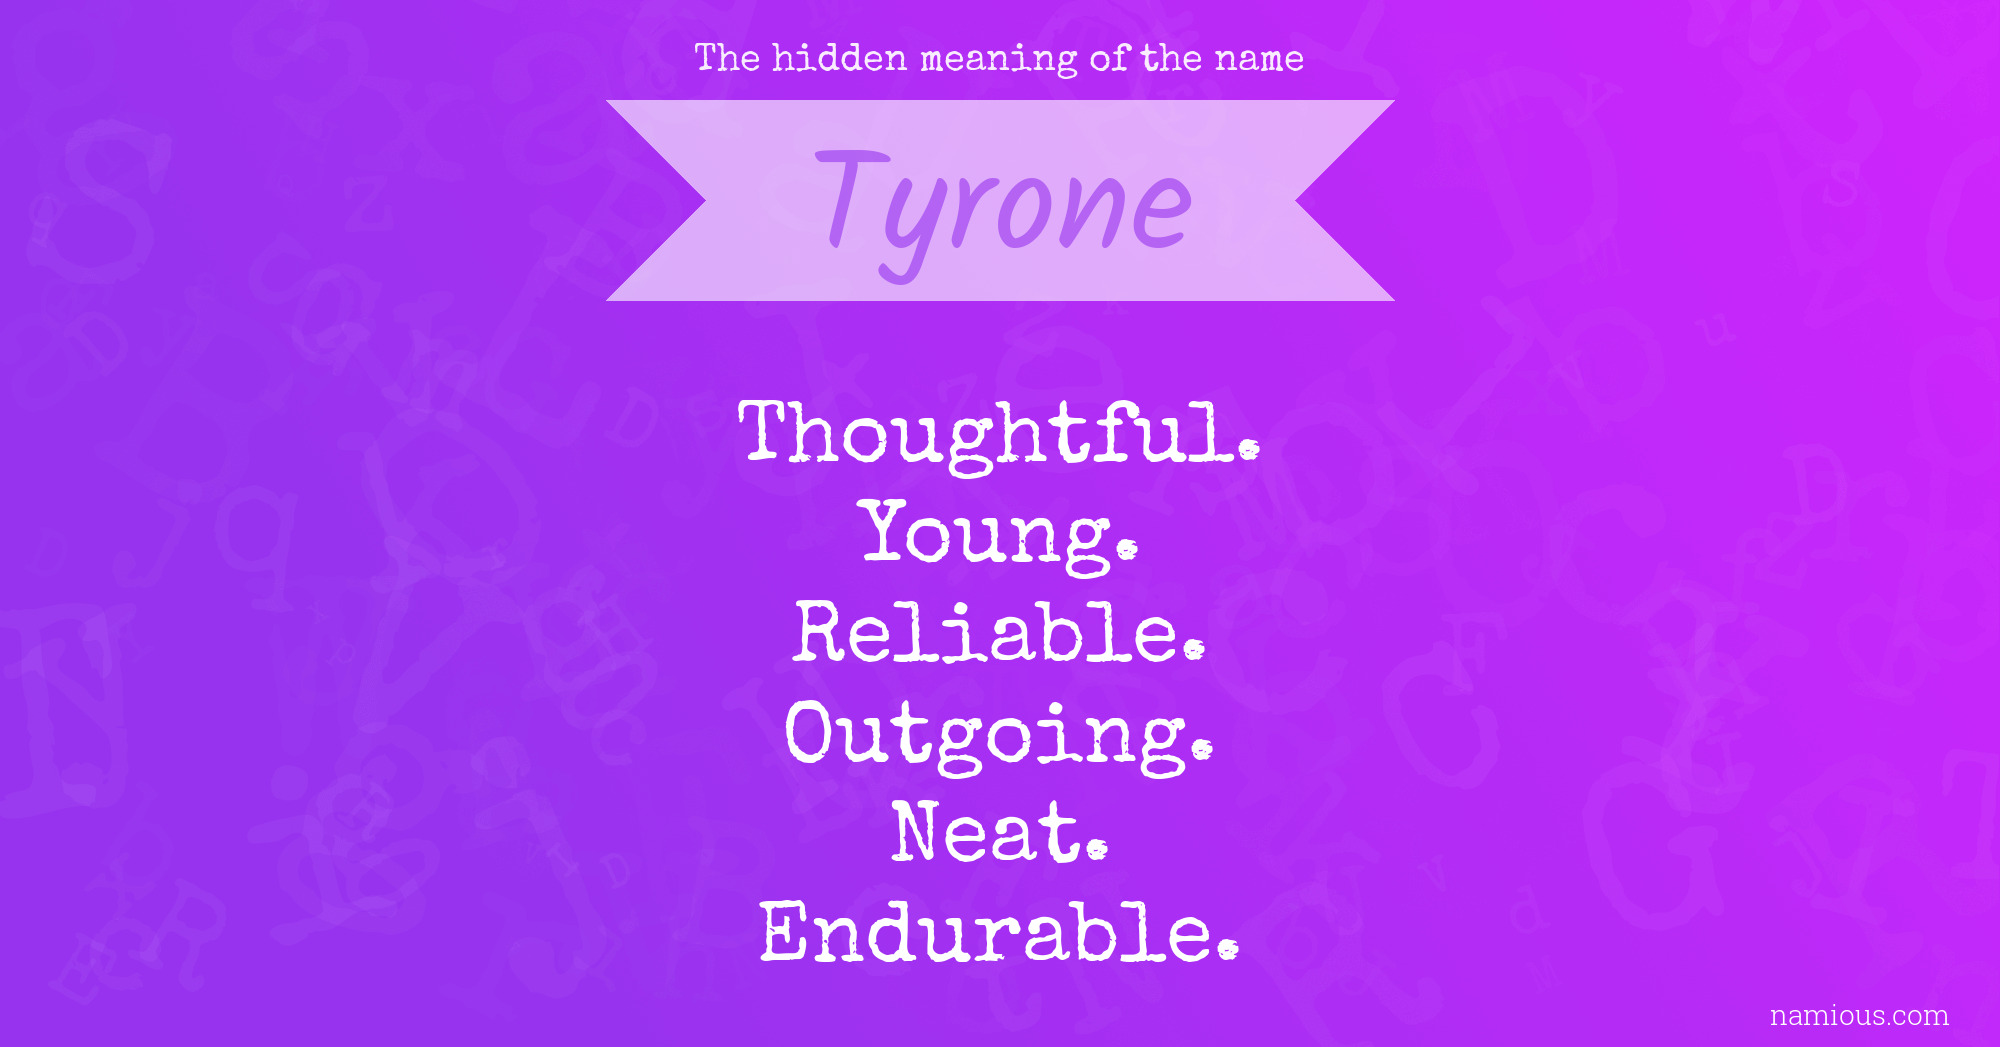 the hidden meaning of the name tyrone namious